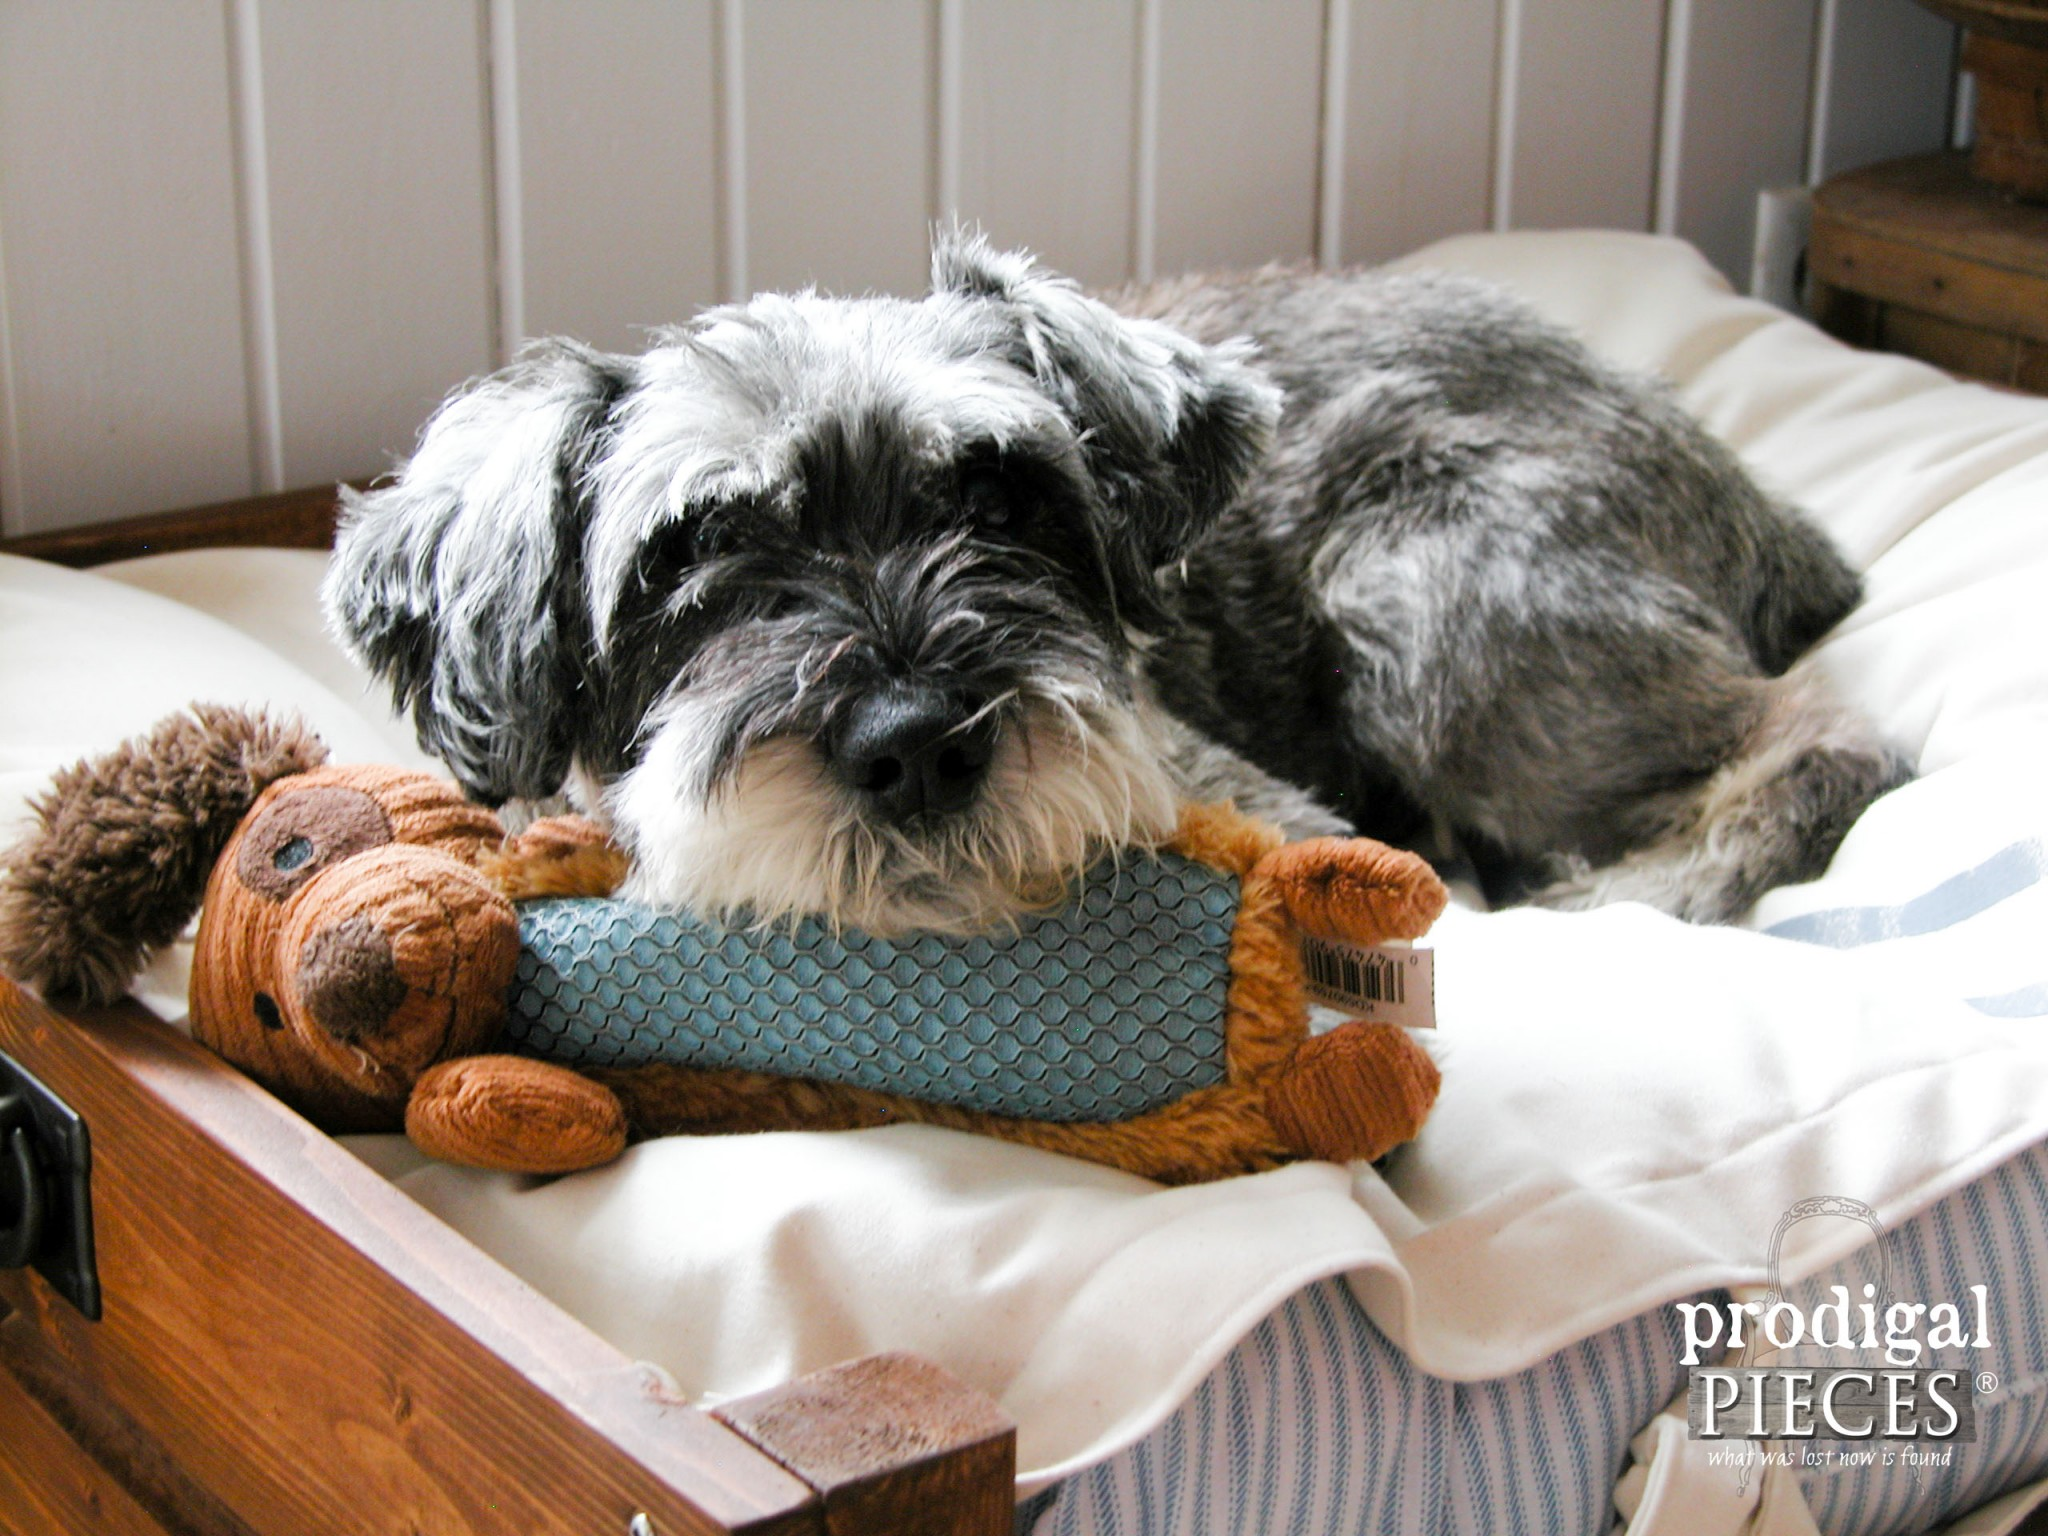 Miniature Schnauzer Curls up with Toy in DIY Pet Bed ~ Includes Plans & Tutorial by Prodigal Pieces | www.prodigalpieces.com